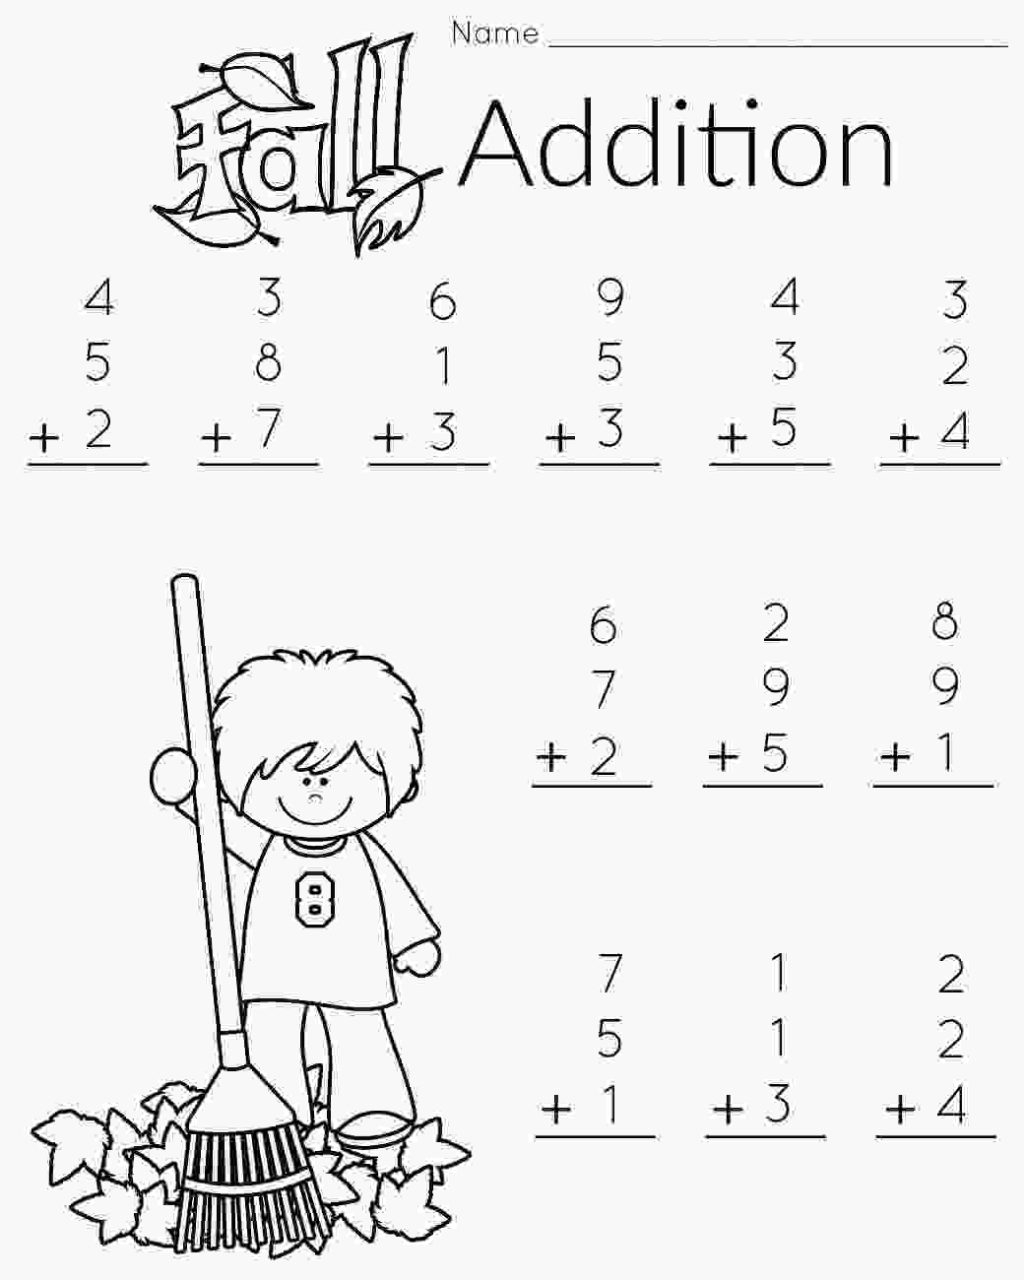 Worksheet ~ Worksheet Free Year Maths Worksheets 2Nd Grade throughout Alphabet Worksheets For Year 2